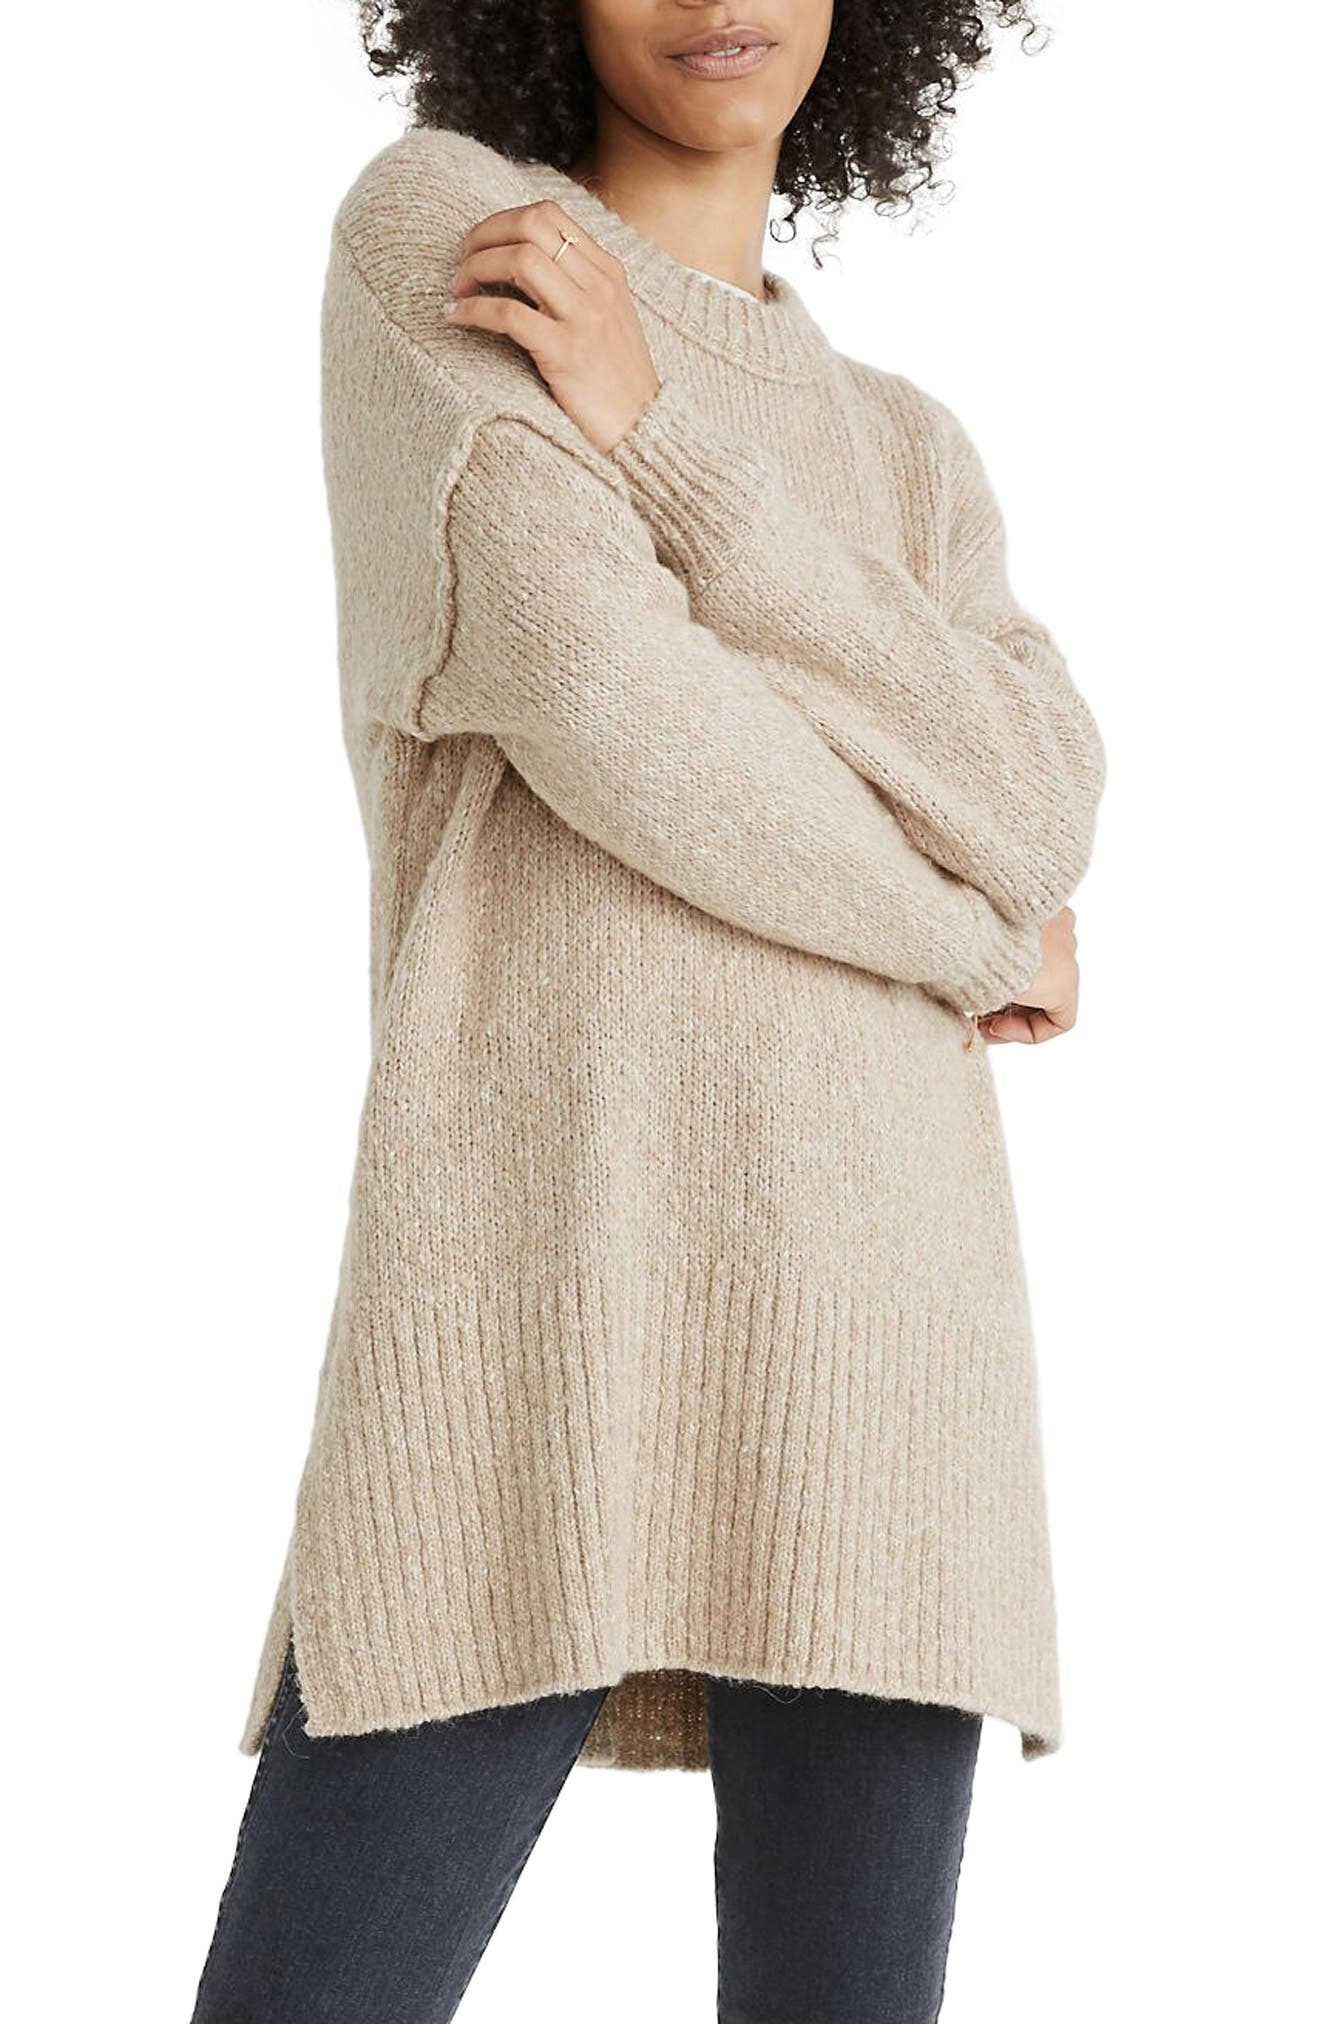 Madewell Baxer Sweater Tunic (Regular & Plus Size)